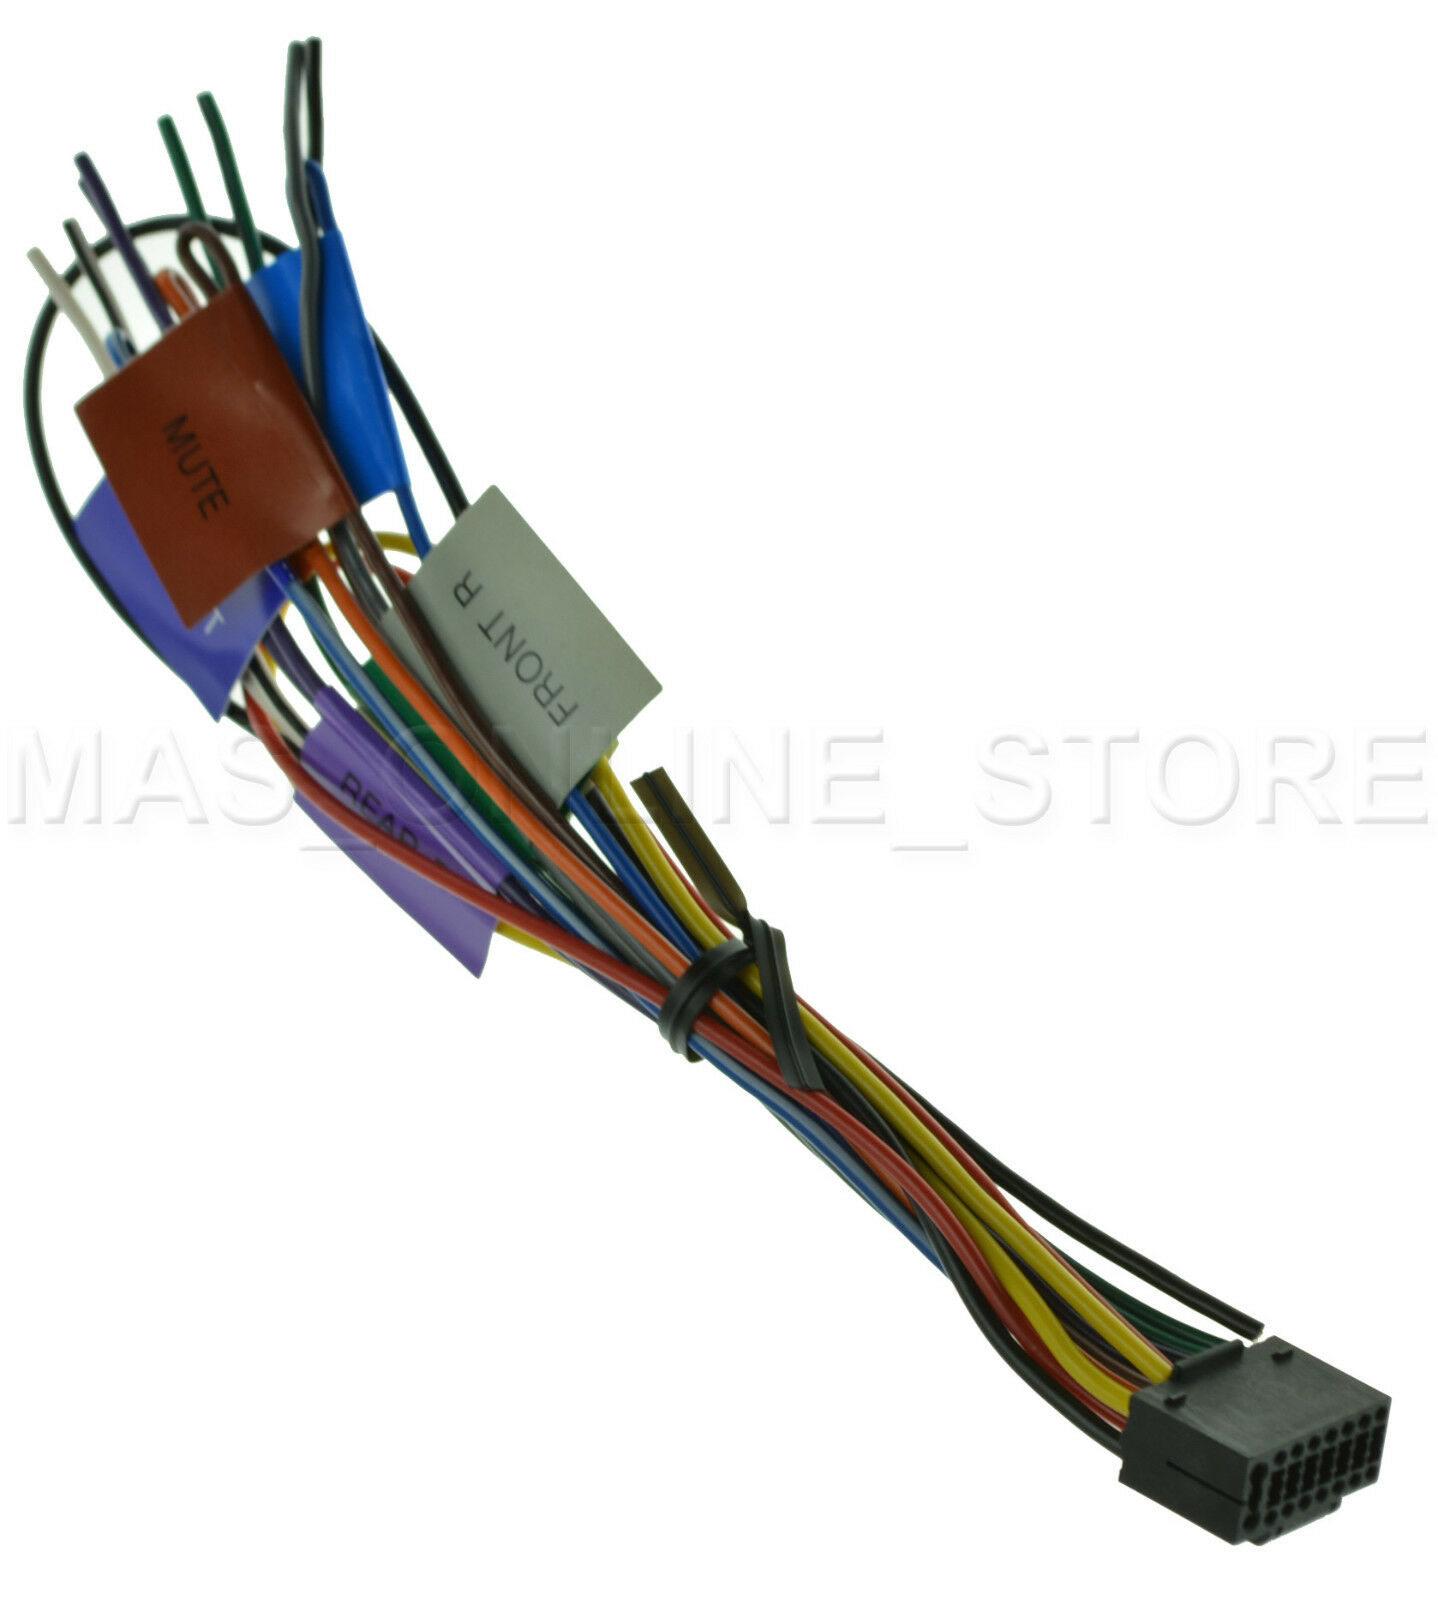 s l1600 kenwood kdc x792 kdcx792 oem genuine wire harness ebay idatalink maestro sw wiring diagram at creativeand.co